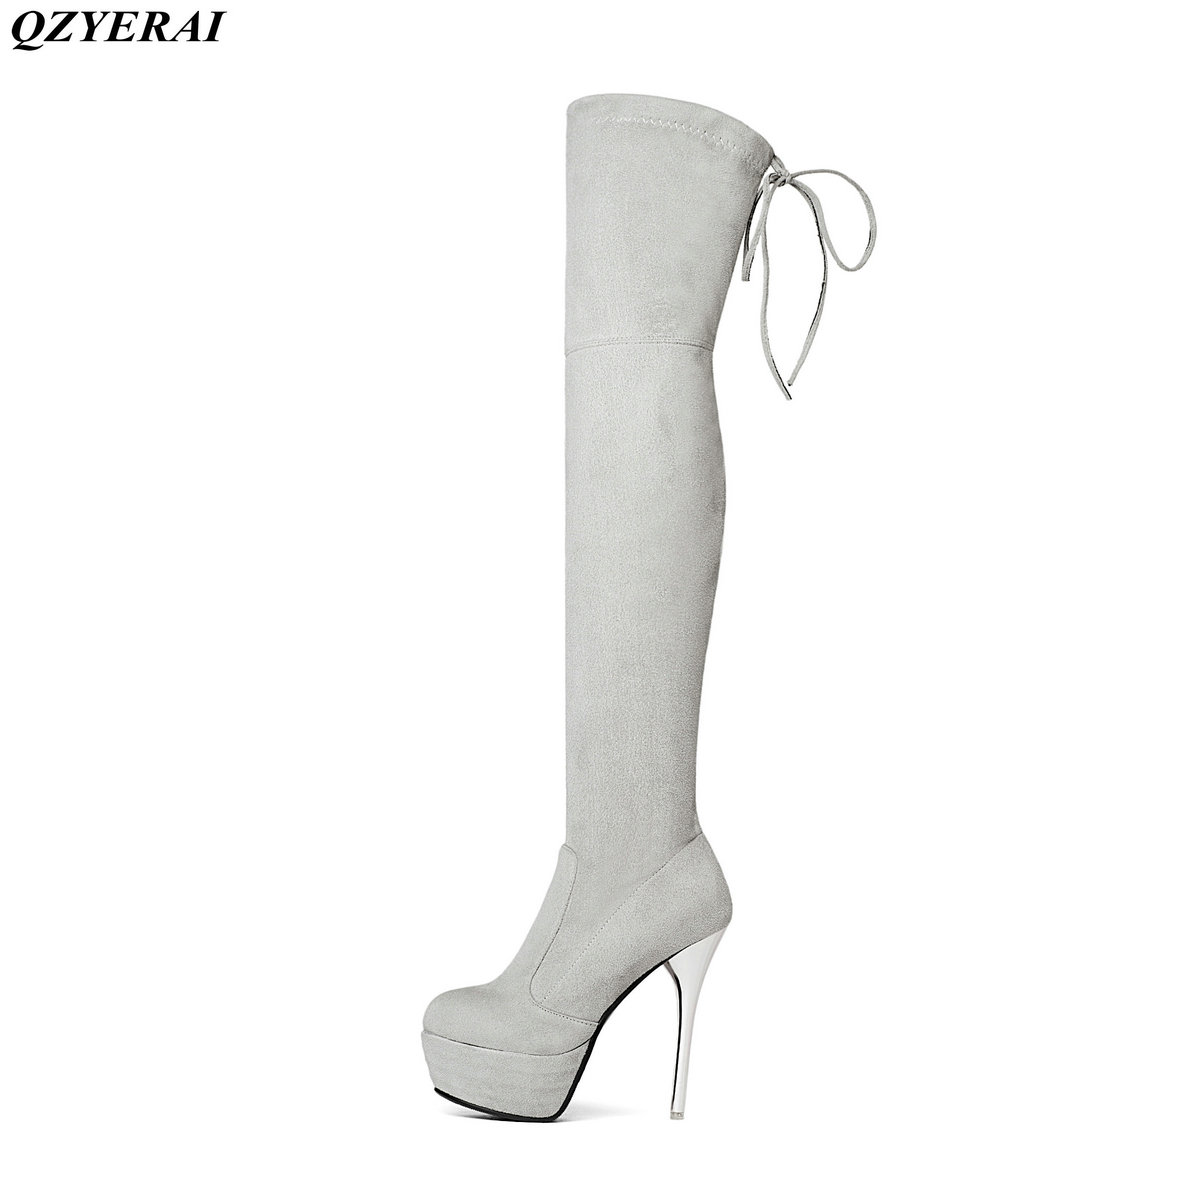 2018 New Women Boots Sexy Fashion Over the Knee Boots Sexy Thin Square Heel Boot Platform Woman Shoes Black size 34-43 new women suede sexy fashion over the knee boots sexy high heel boots platform woman shoes black blue size 34 43